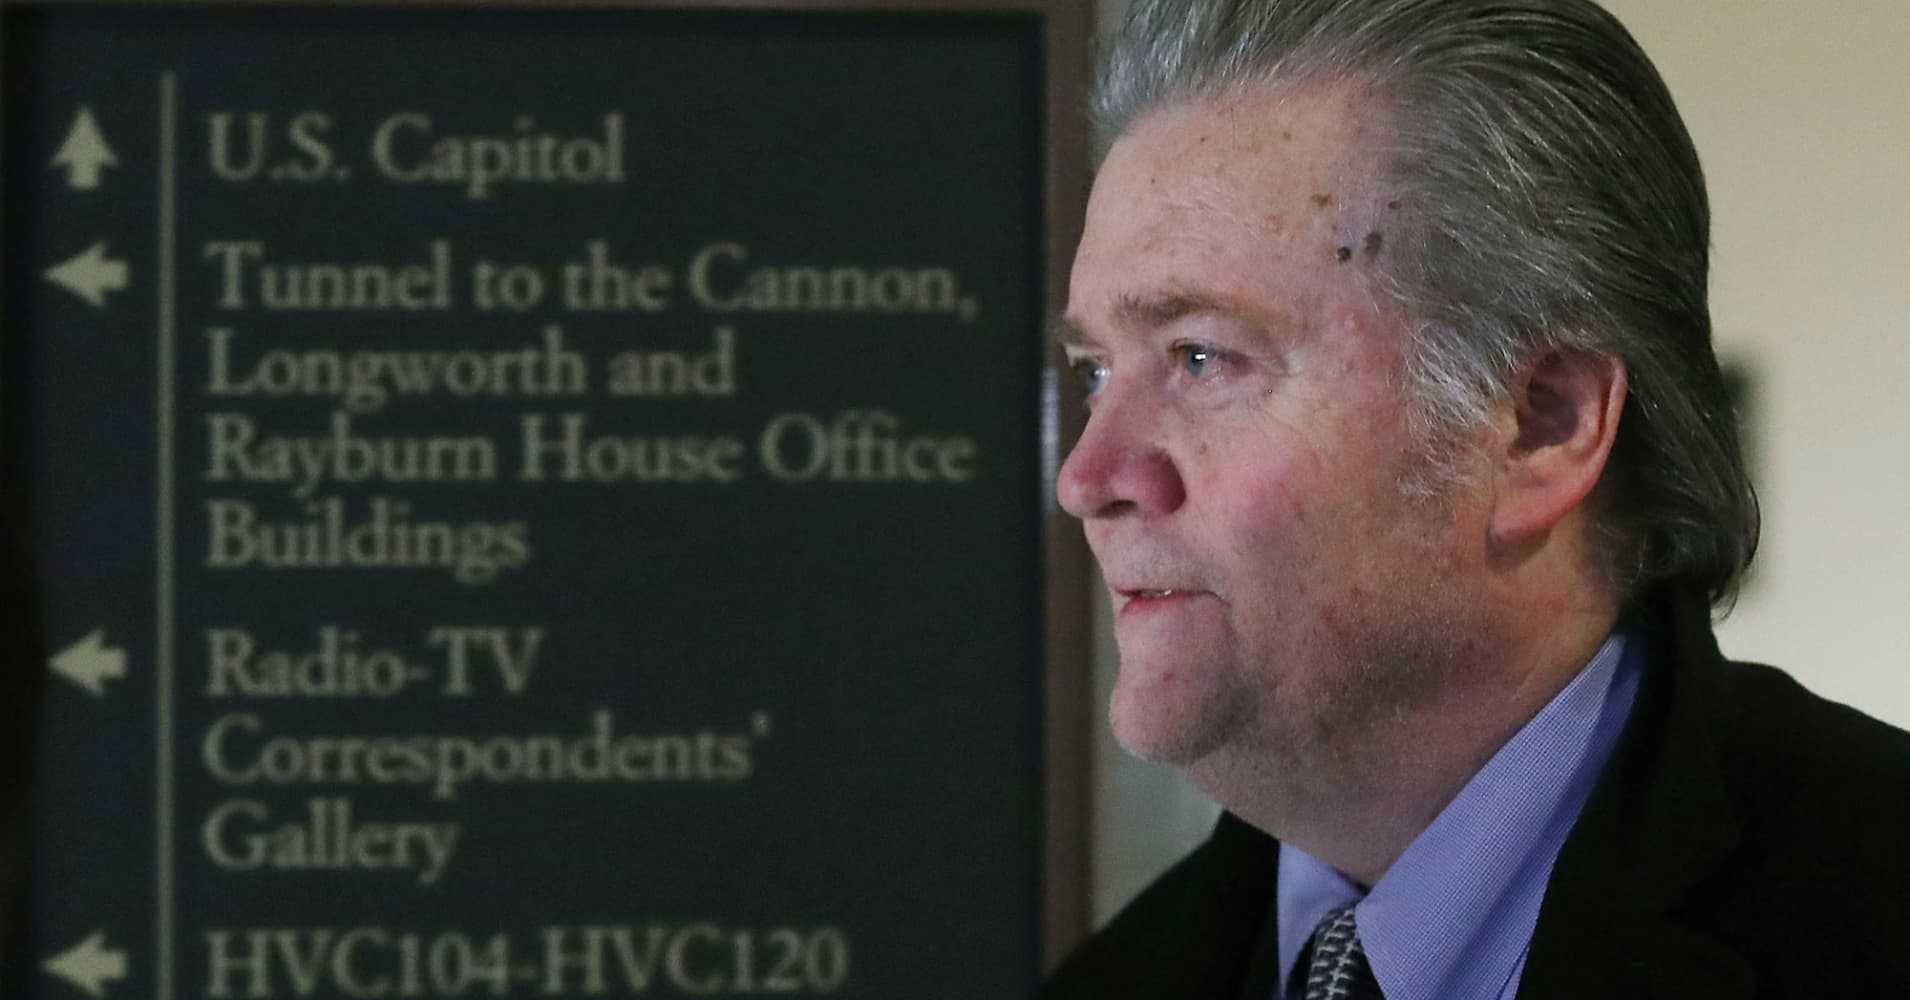 Former Trump aide Bannon refuses to comply with House subpoena